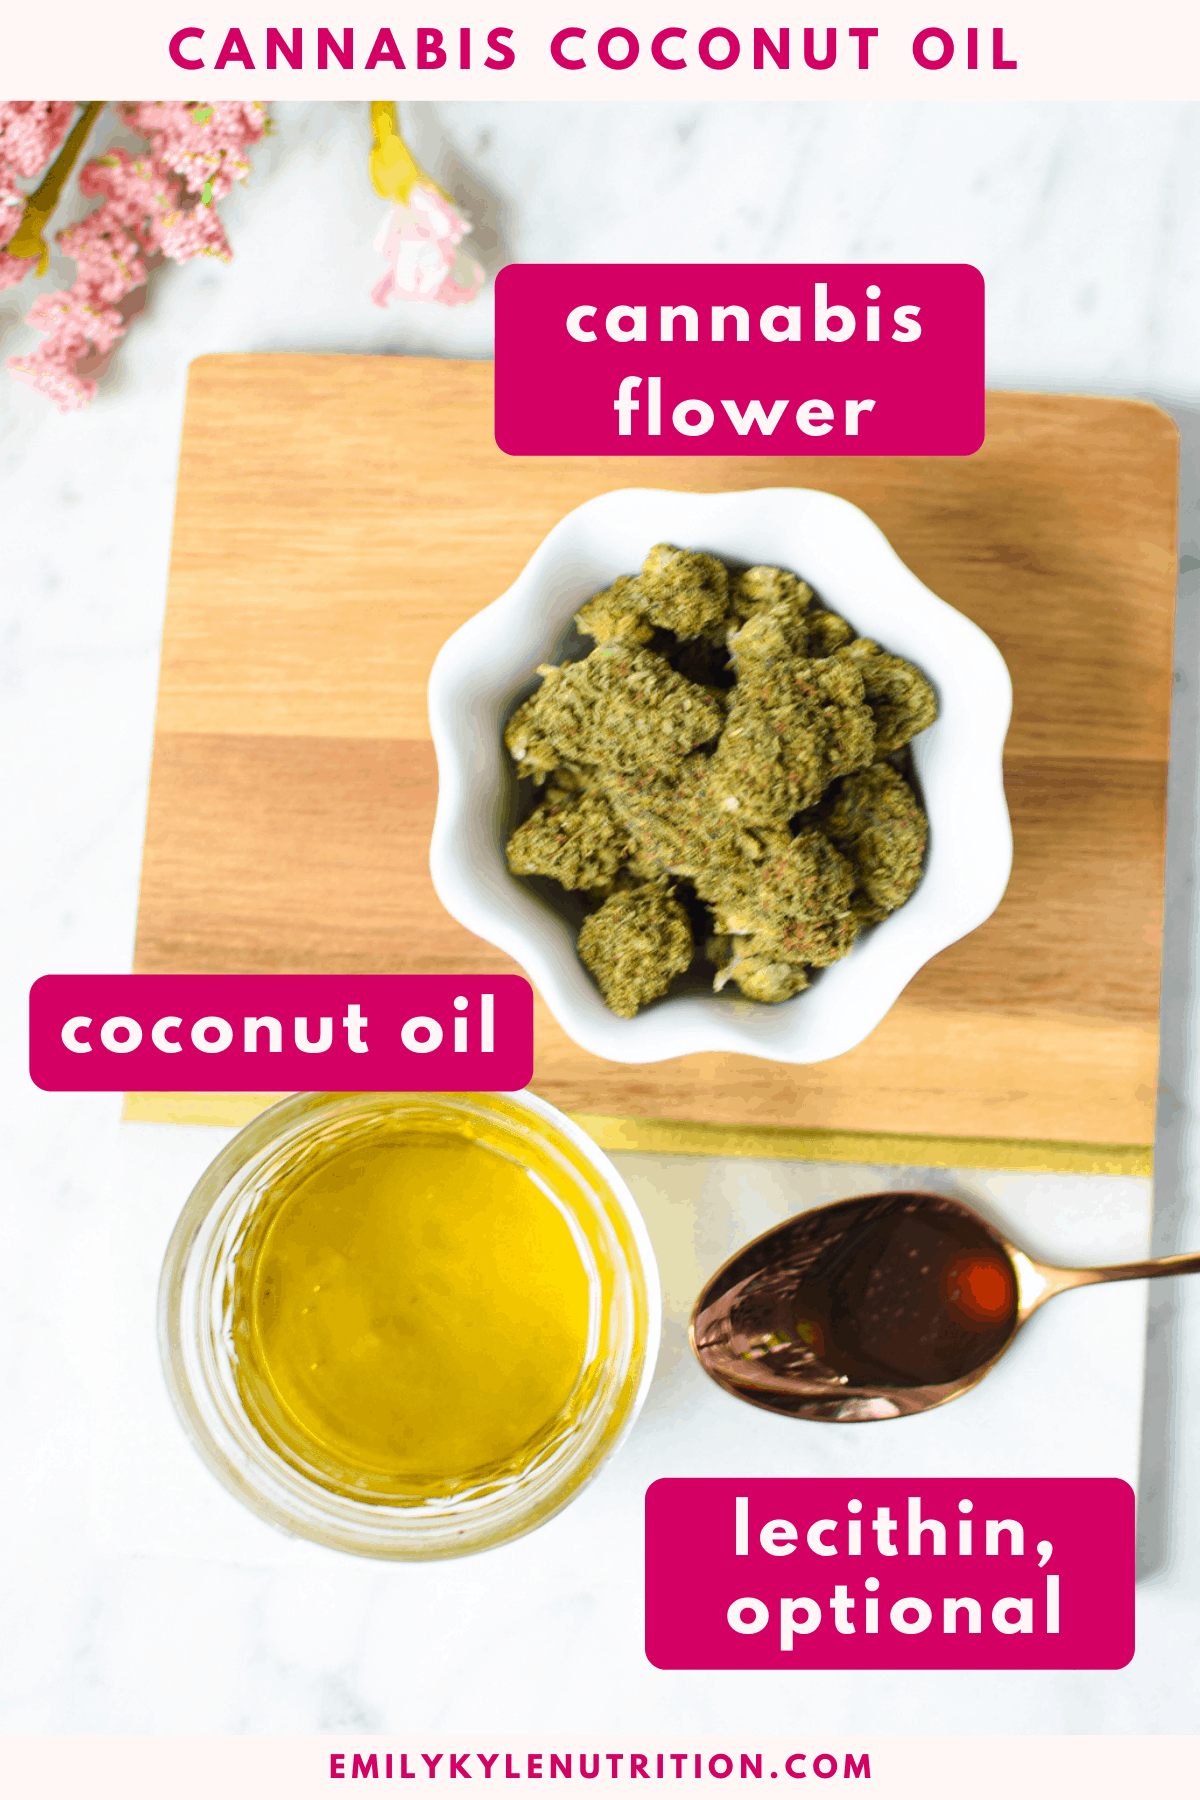 A white marble counter top with a jar of cannabis flowers, a container of coconut oil, and a spoonful of lecithin